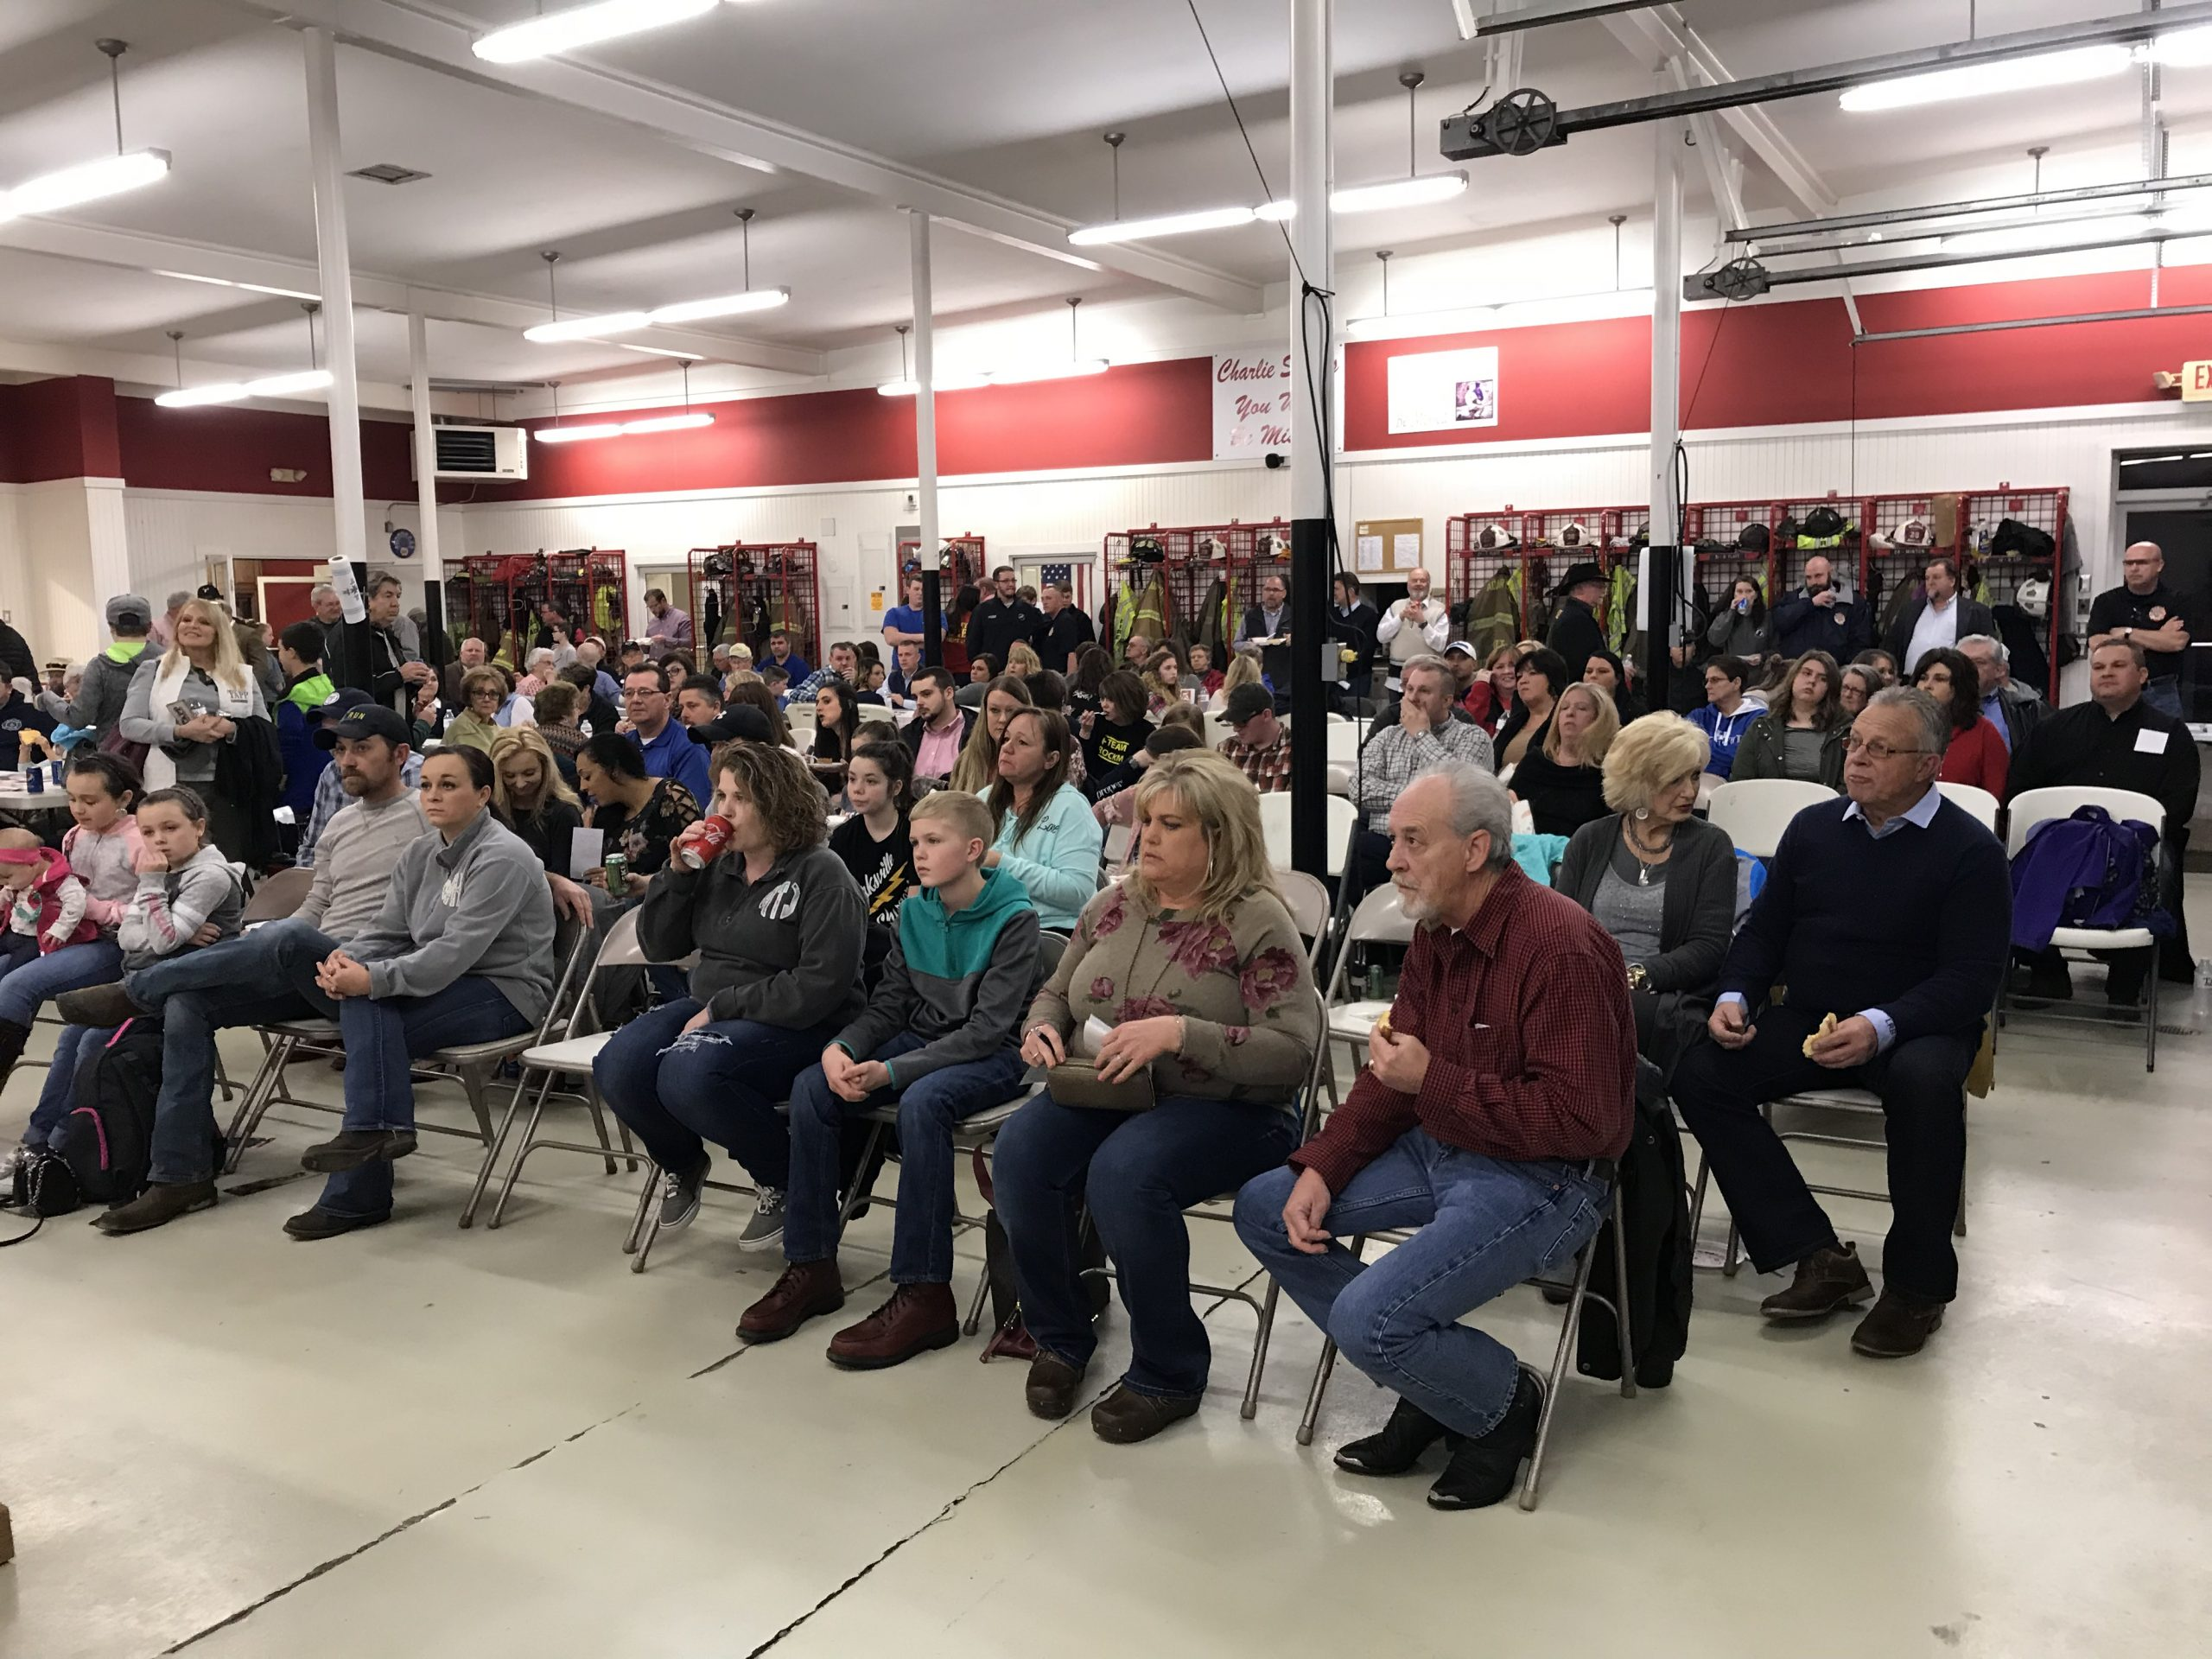 Huge Turnout For Fire Department's Candidate Forum